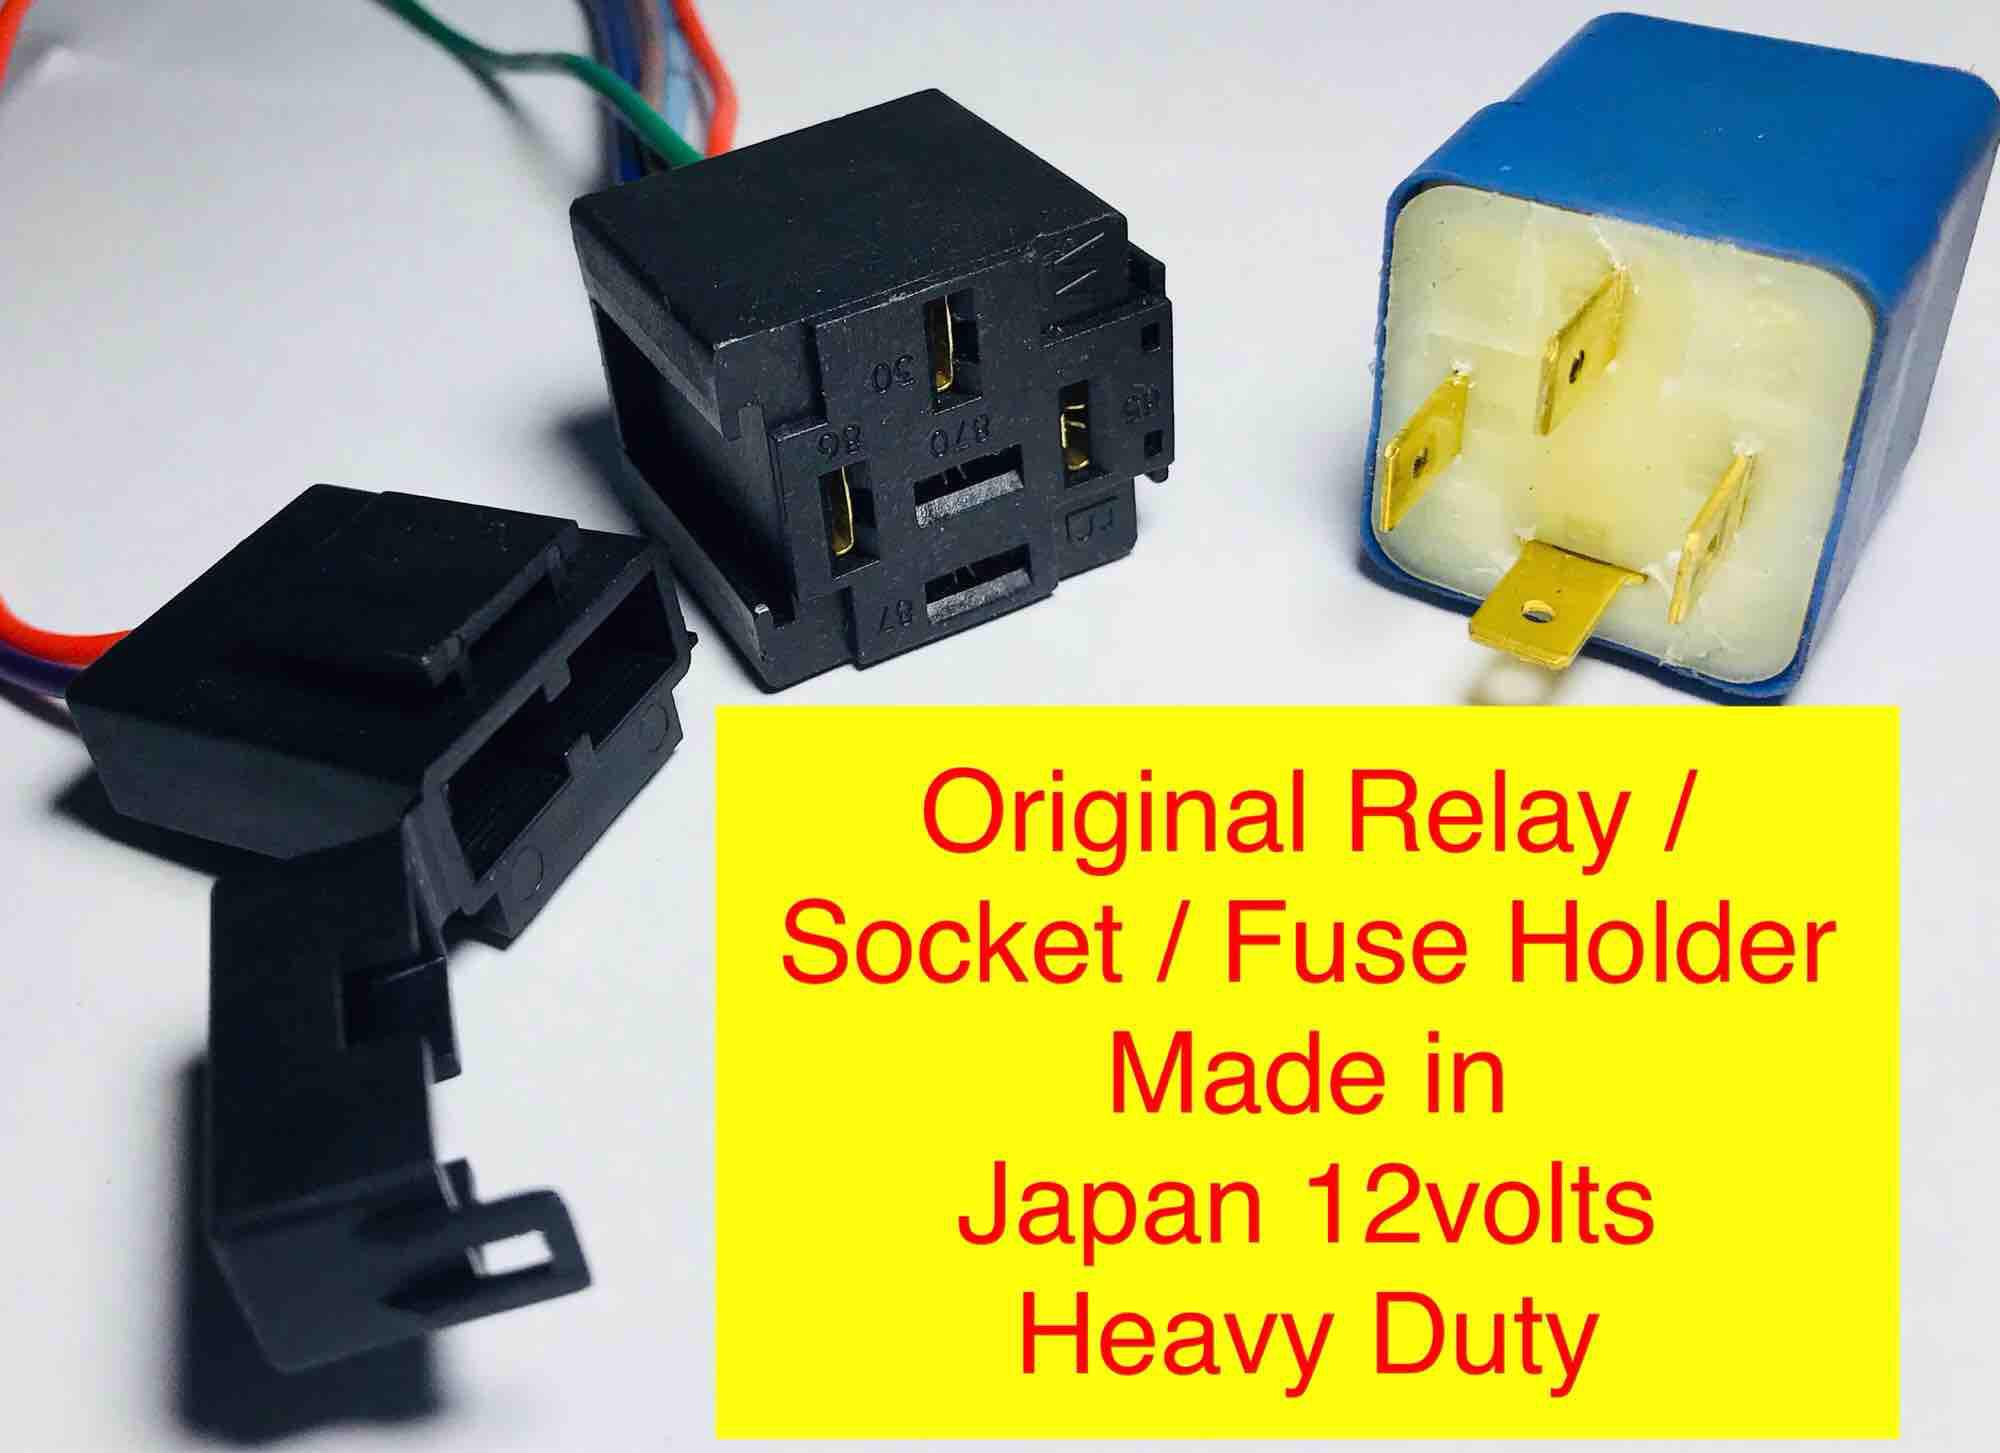 Car Relays For Sale Automotive Online Brands Prices Kit Fuse Relay Box Auto 12v Socket Holder Like Bosch Original Universal